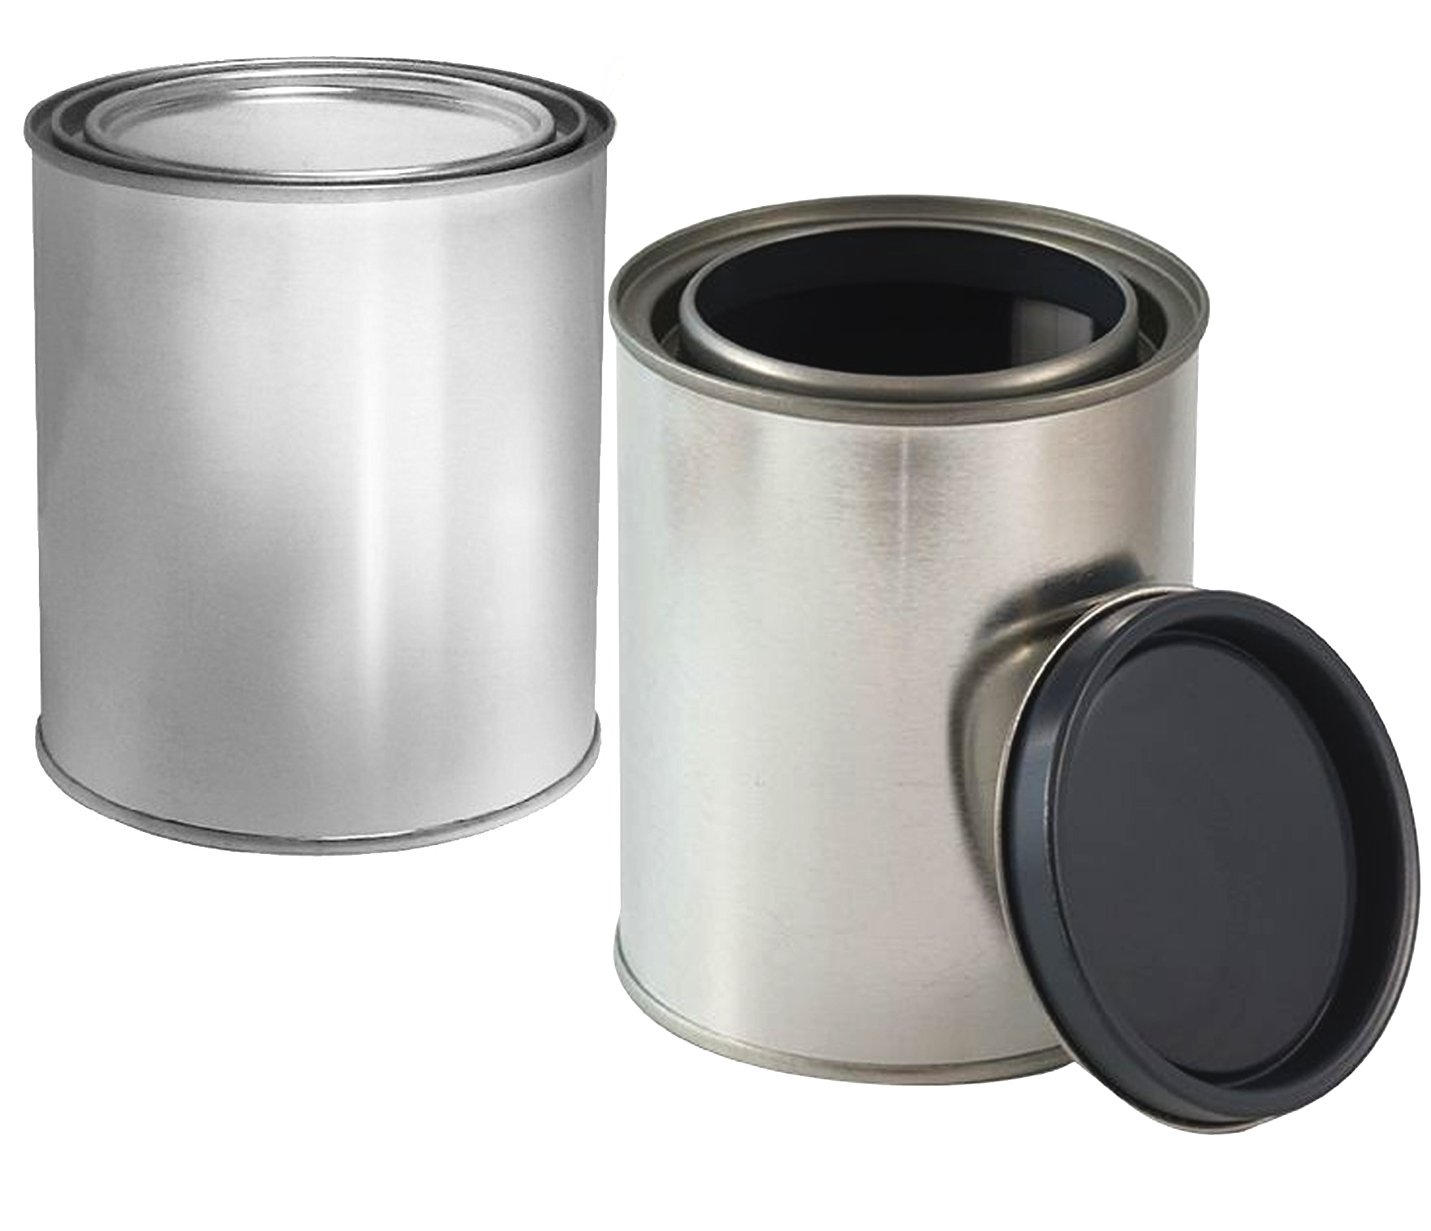 Cheap Small Tin Cans With Lids, find Small Tin Cans With Lids deals on line at Alibaba.com